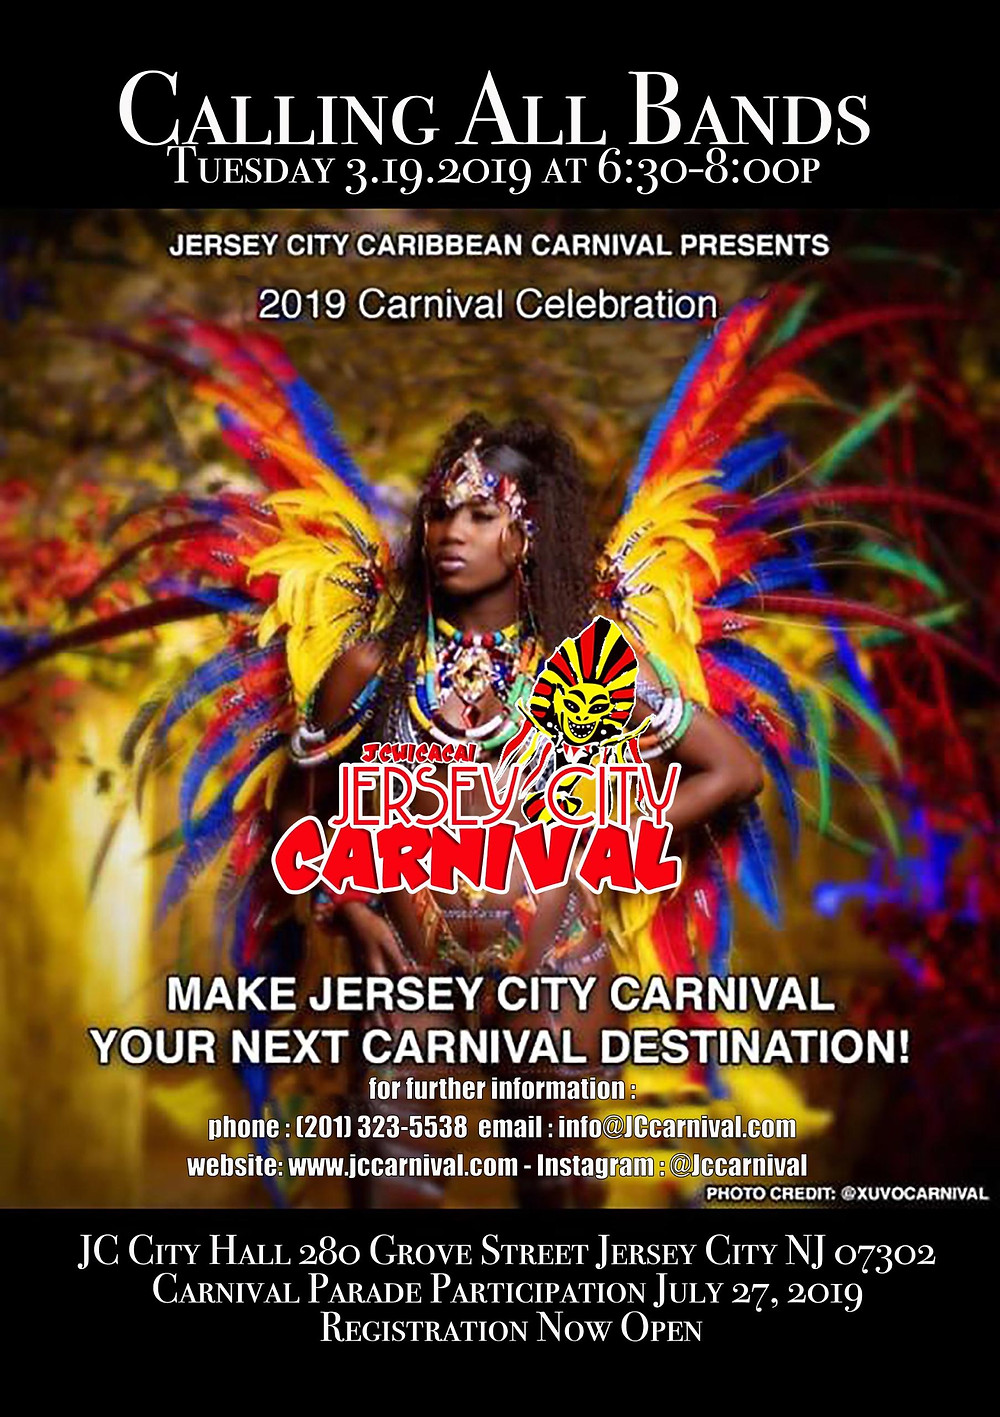 Save the Date: JC Carnival Parade July 27, 2019